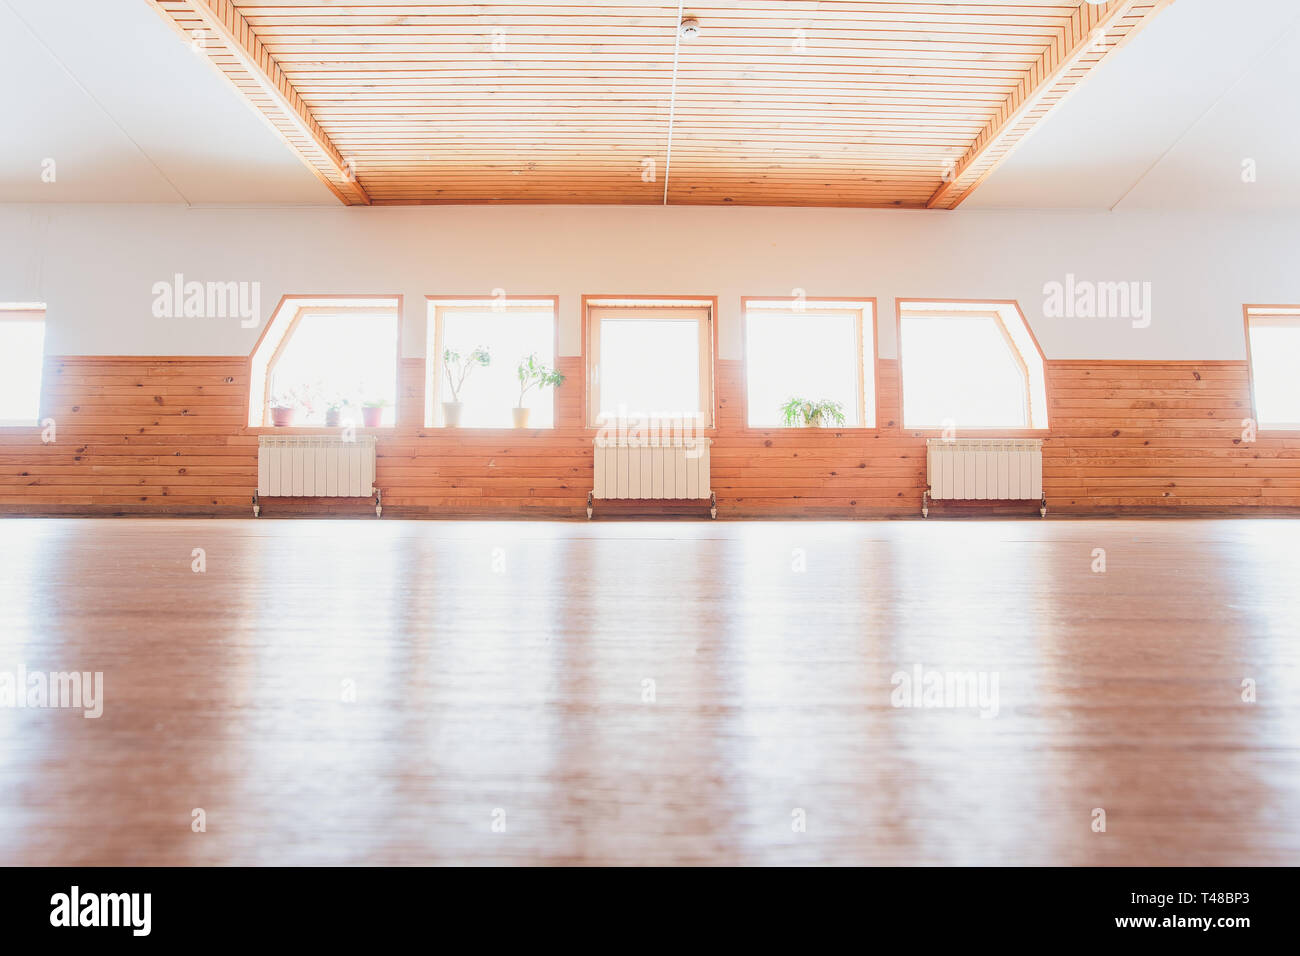 Empty Yoga Studio Interior Design High Resolution Stock Photography And Images Alamy